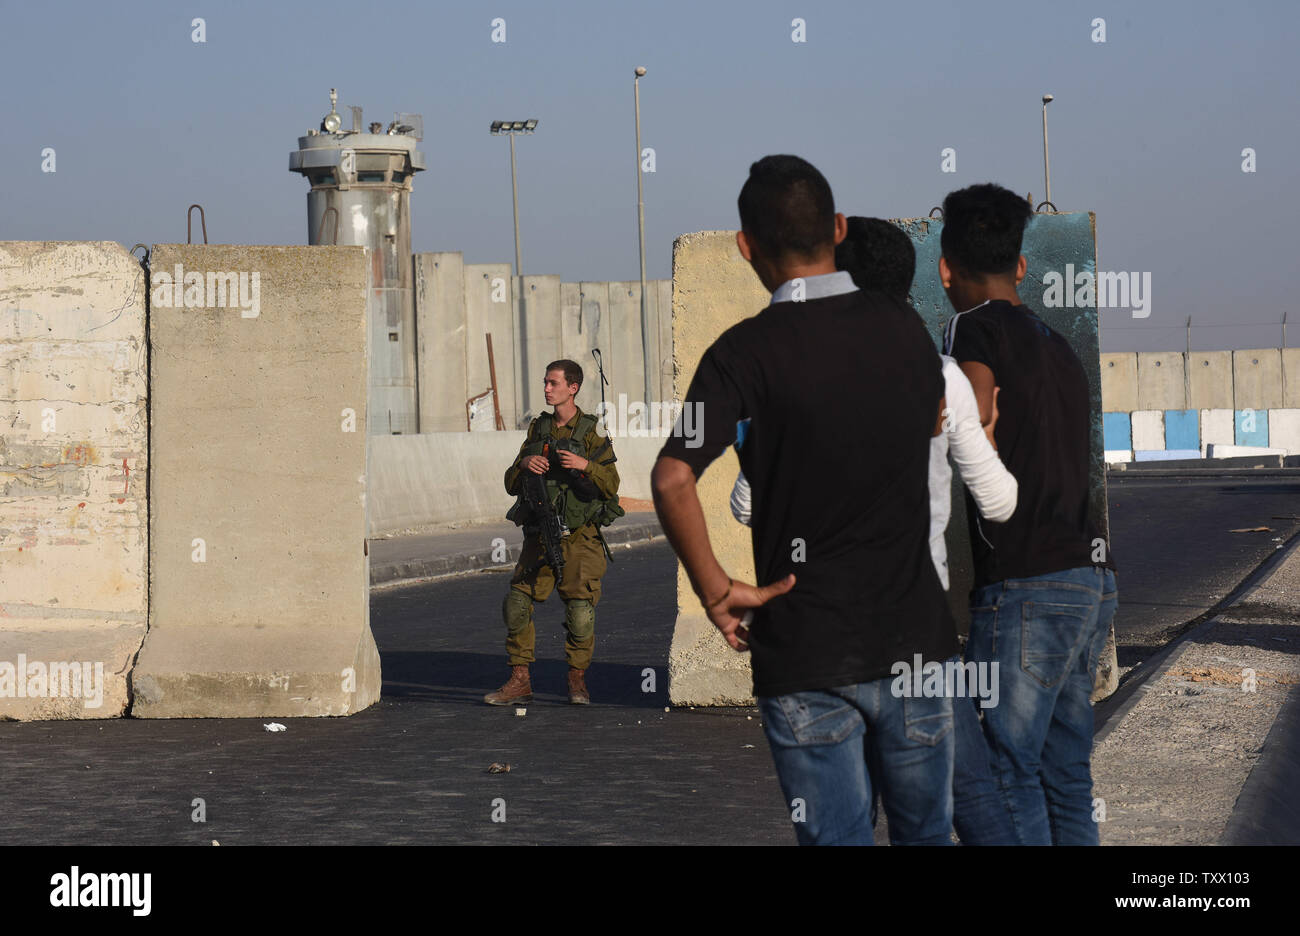 Palestinian youth look at an Israeli soldier at the Qalandiya checkpoint, West Bank, on the last Friday of the Muslim holy month of Ramadan, June 8, 2018.  Photo by Debbie Hill/UPI - Stock Image